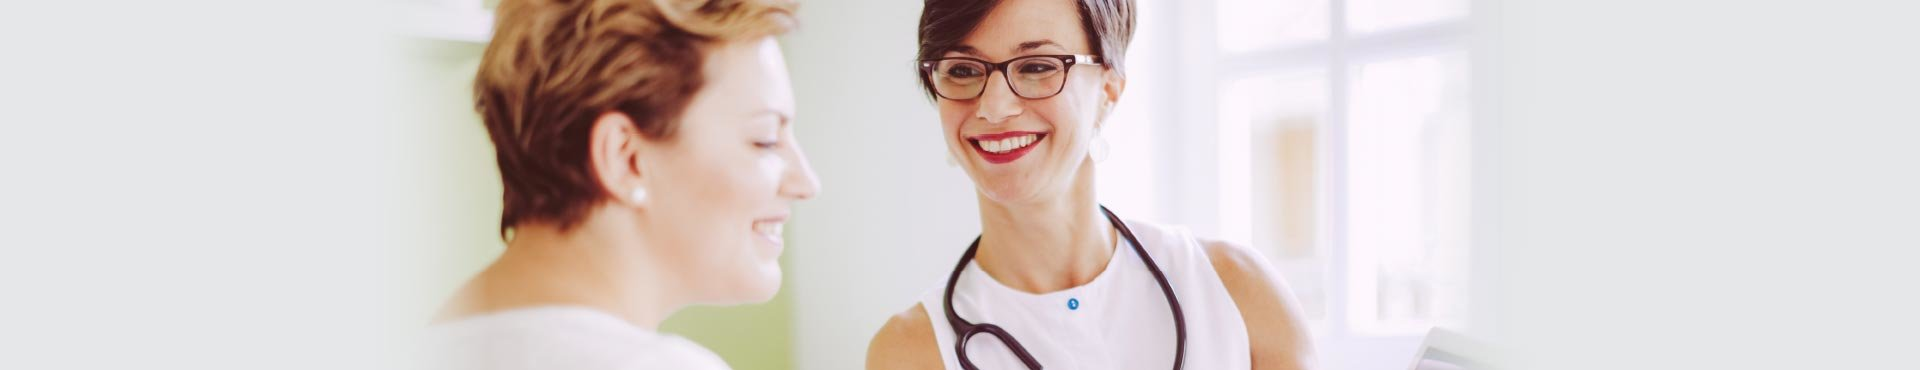 Doctor speaks with patient | Shine Lawyers